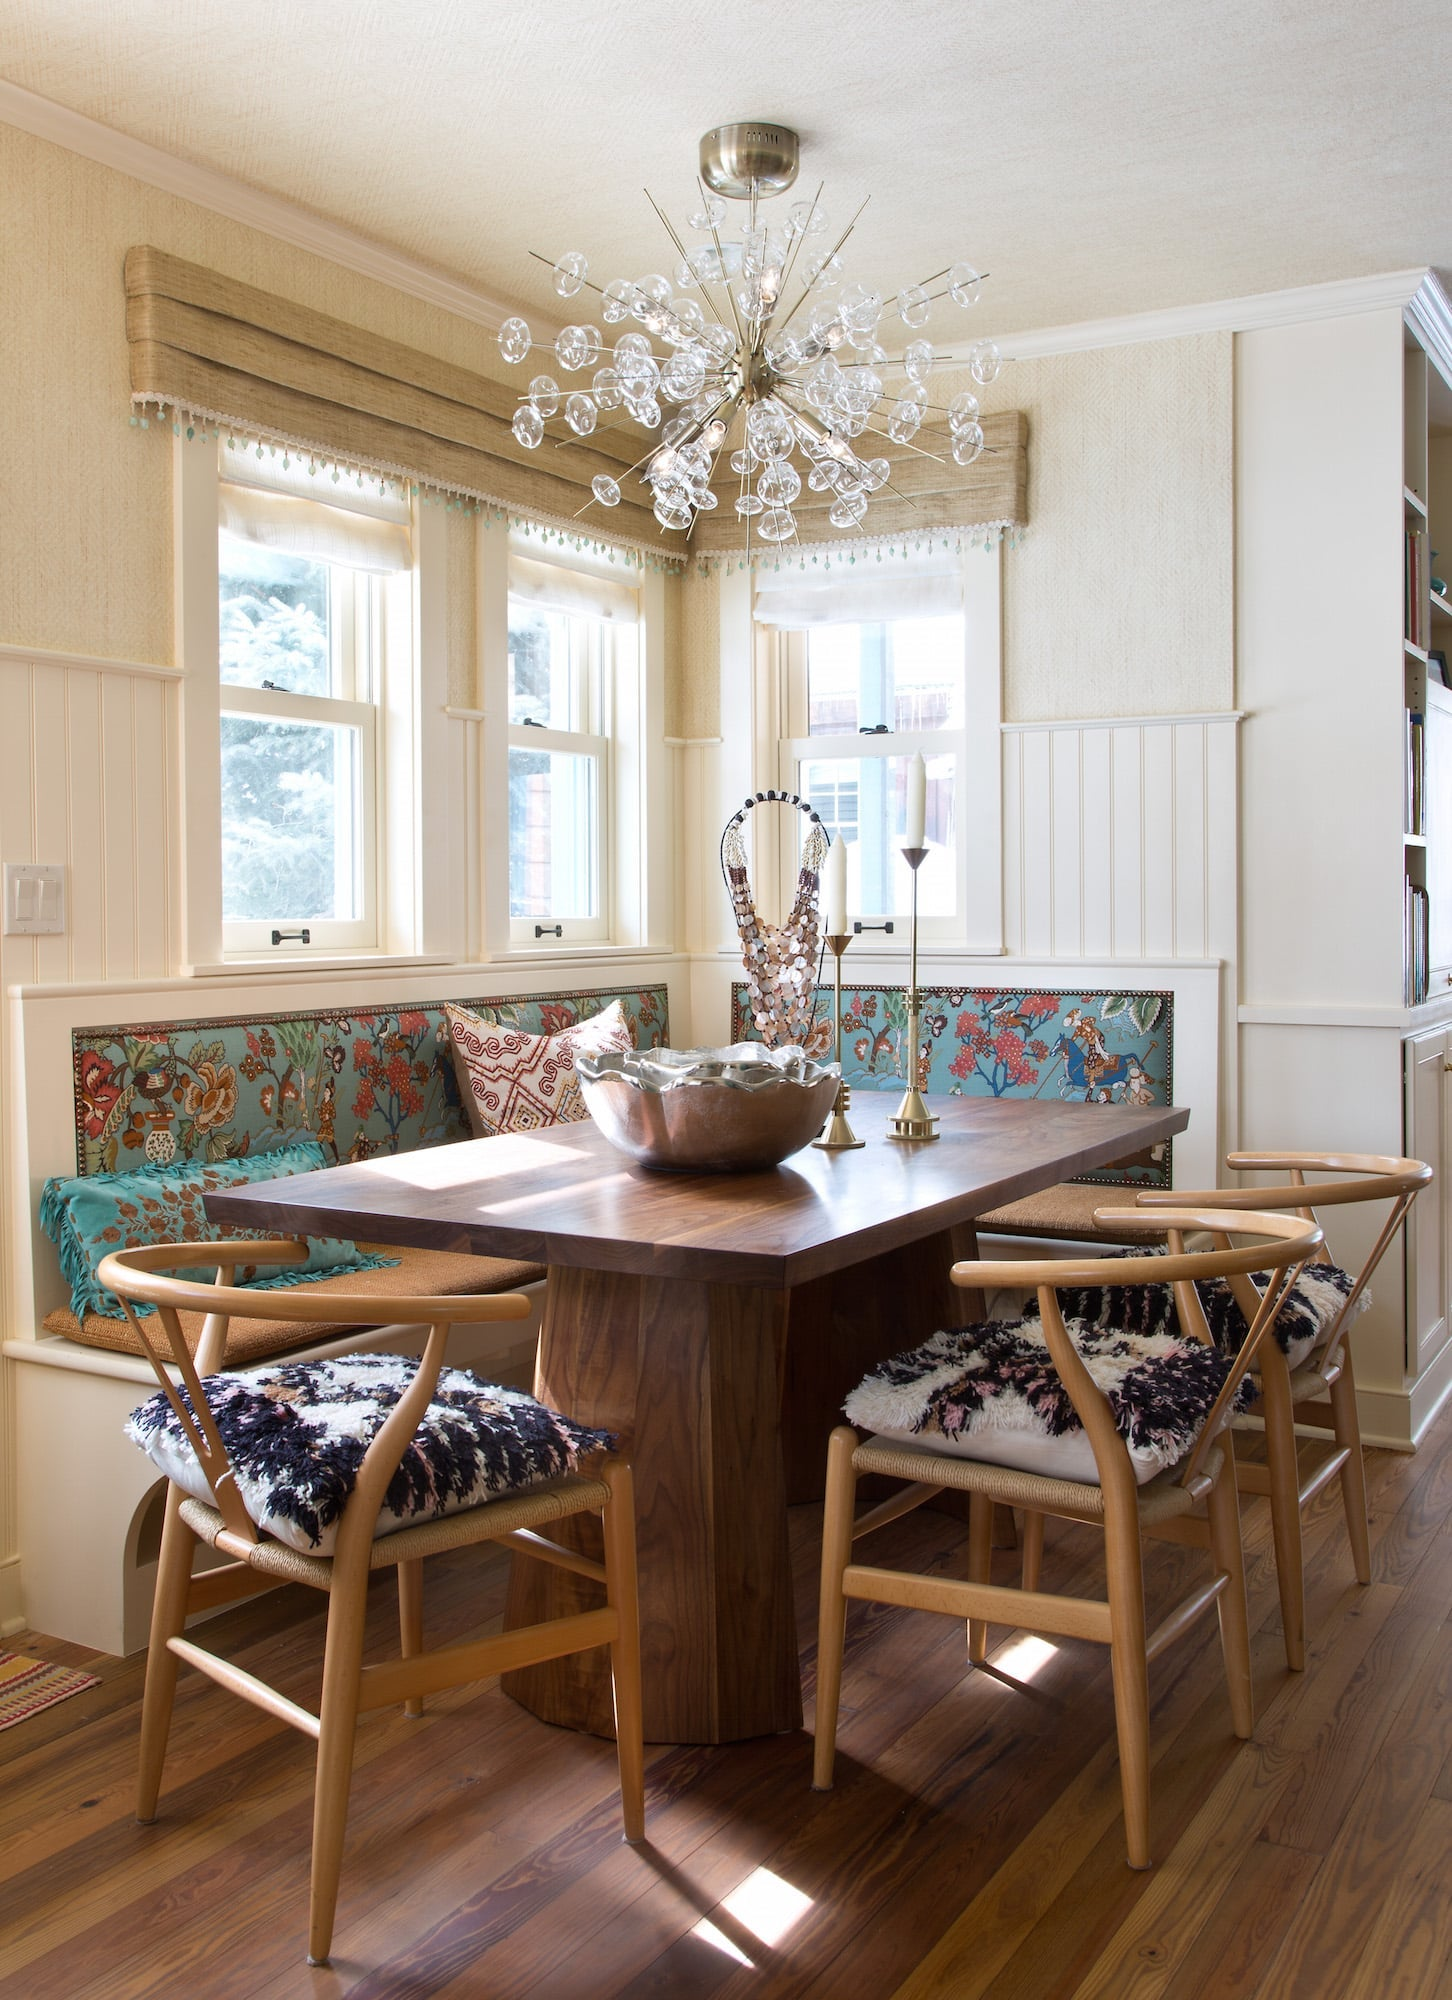 For a dining space in Crested Butte, Colorado, the designer upholstered a banquette in Hurlingham fabric from Cowtan & Tout and wrapped the space — even the ceiling — with Phillip Jefferies' Diamond Weave grass-cloth wallcovering in Richmond Bisque. Photo by Emily Minton Redfield